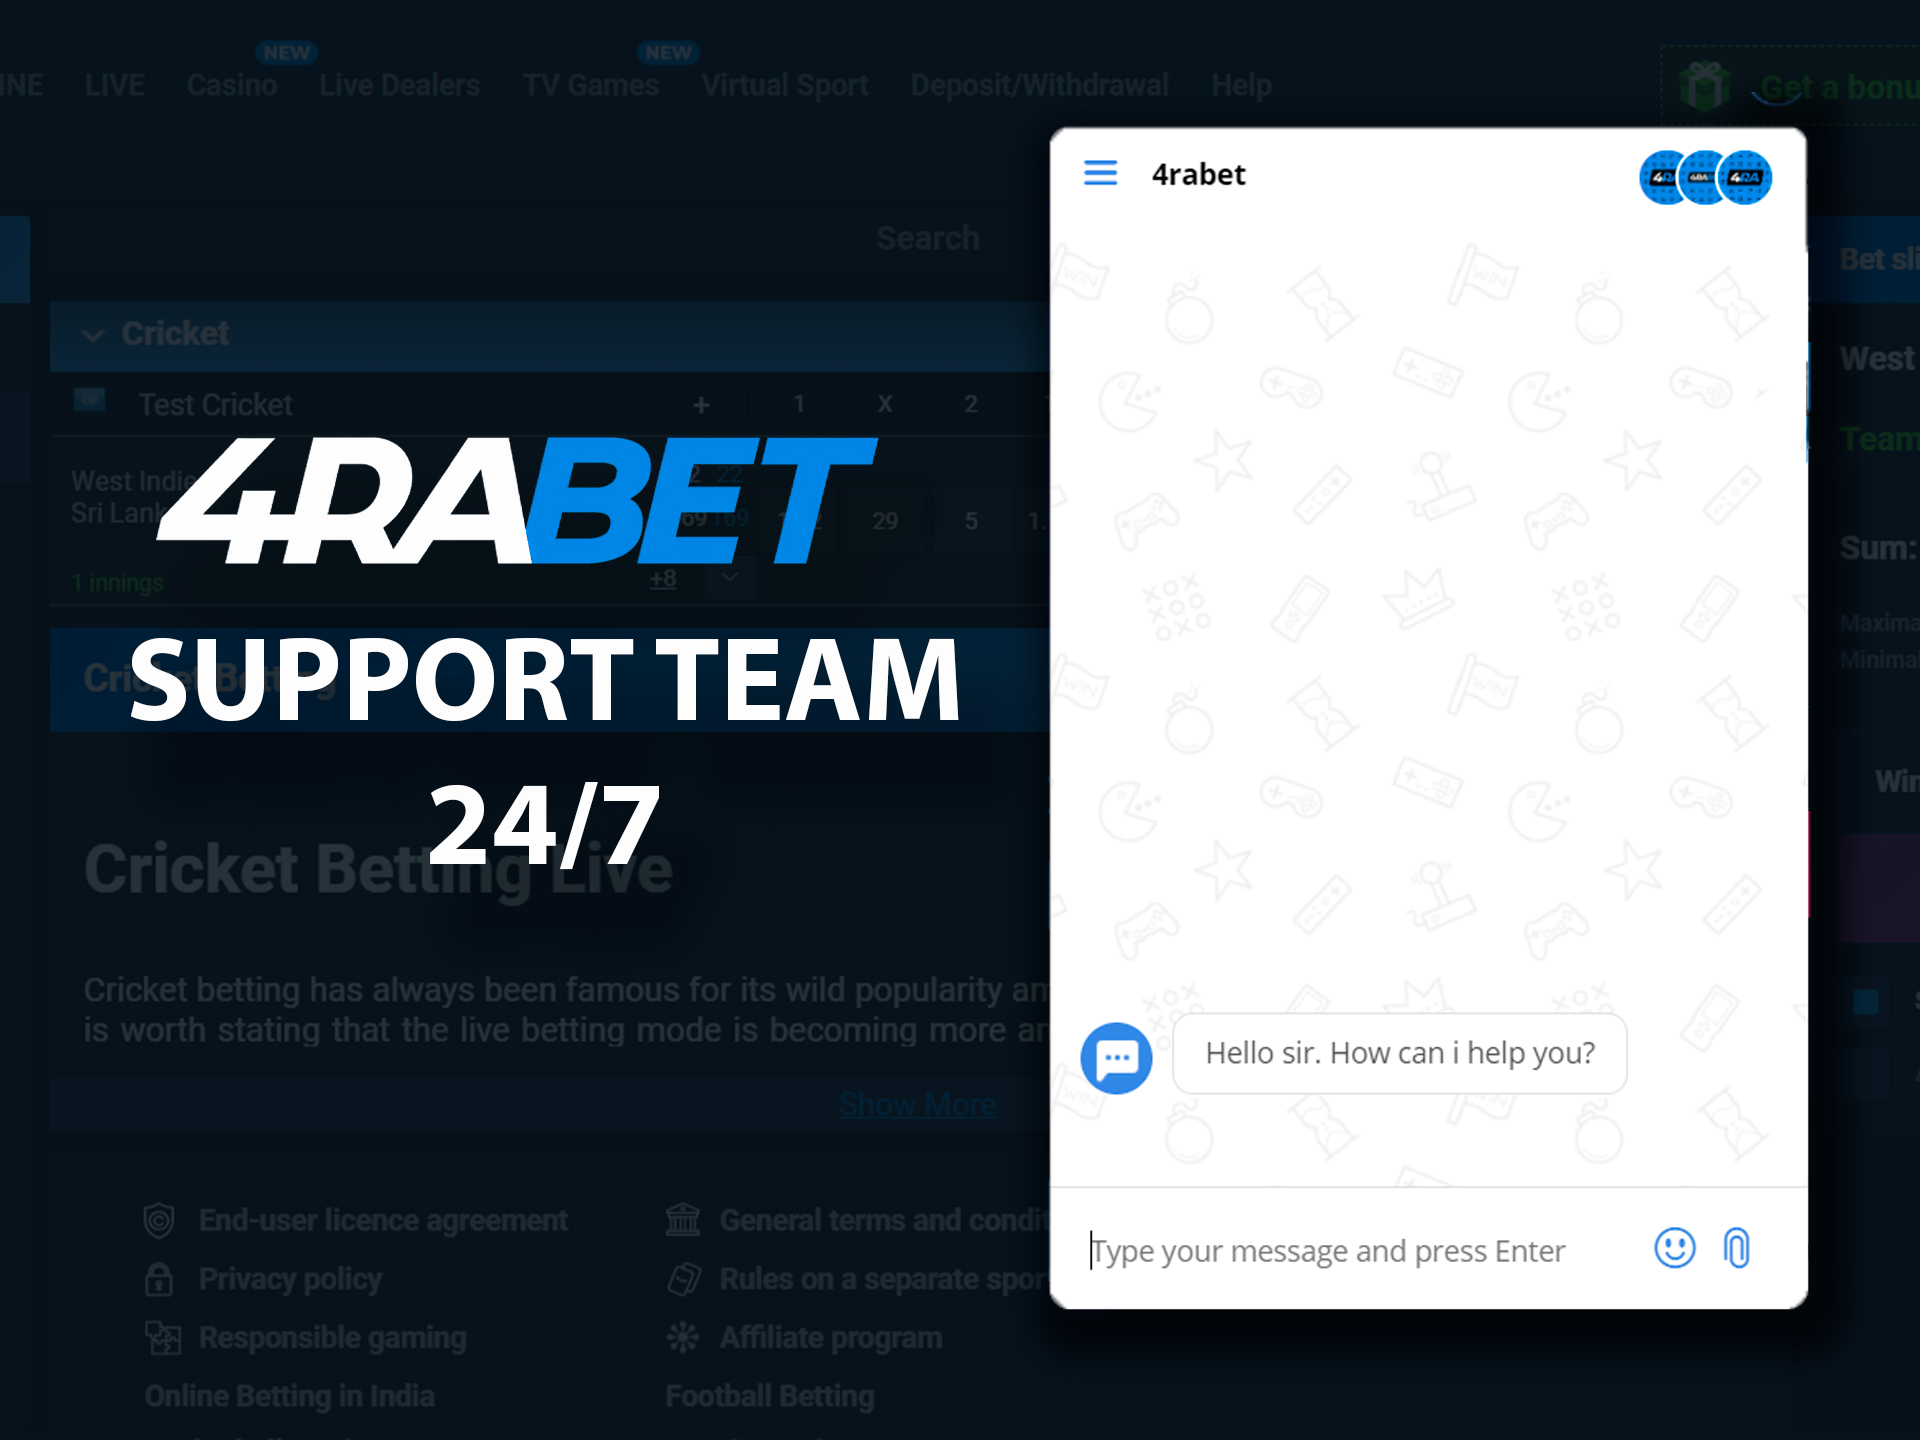 You can contact 4rabet's support team 24/7 every day.